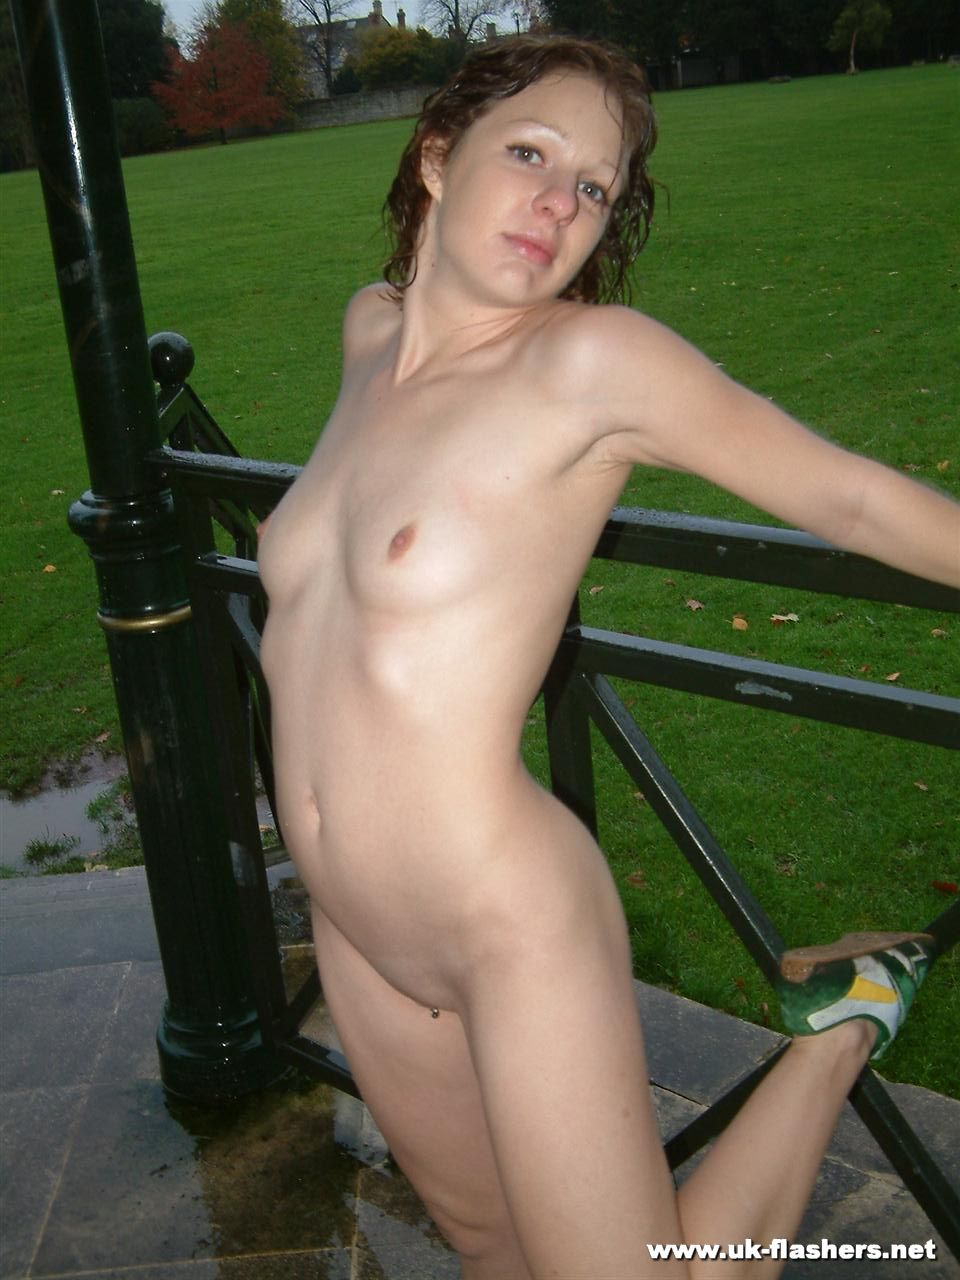 Accept. interesting Amateur milf naked outdoors that can